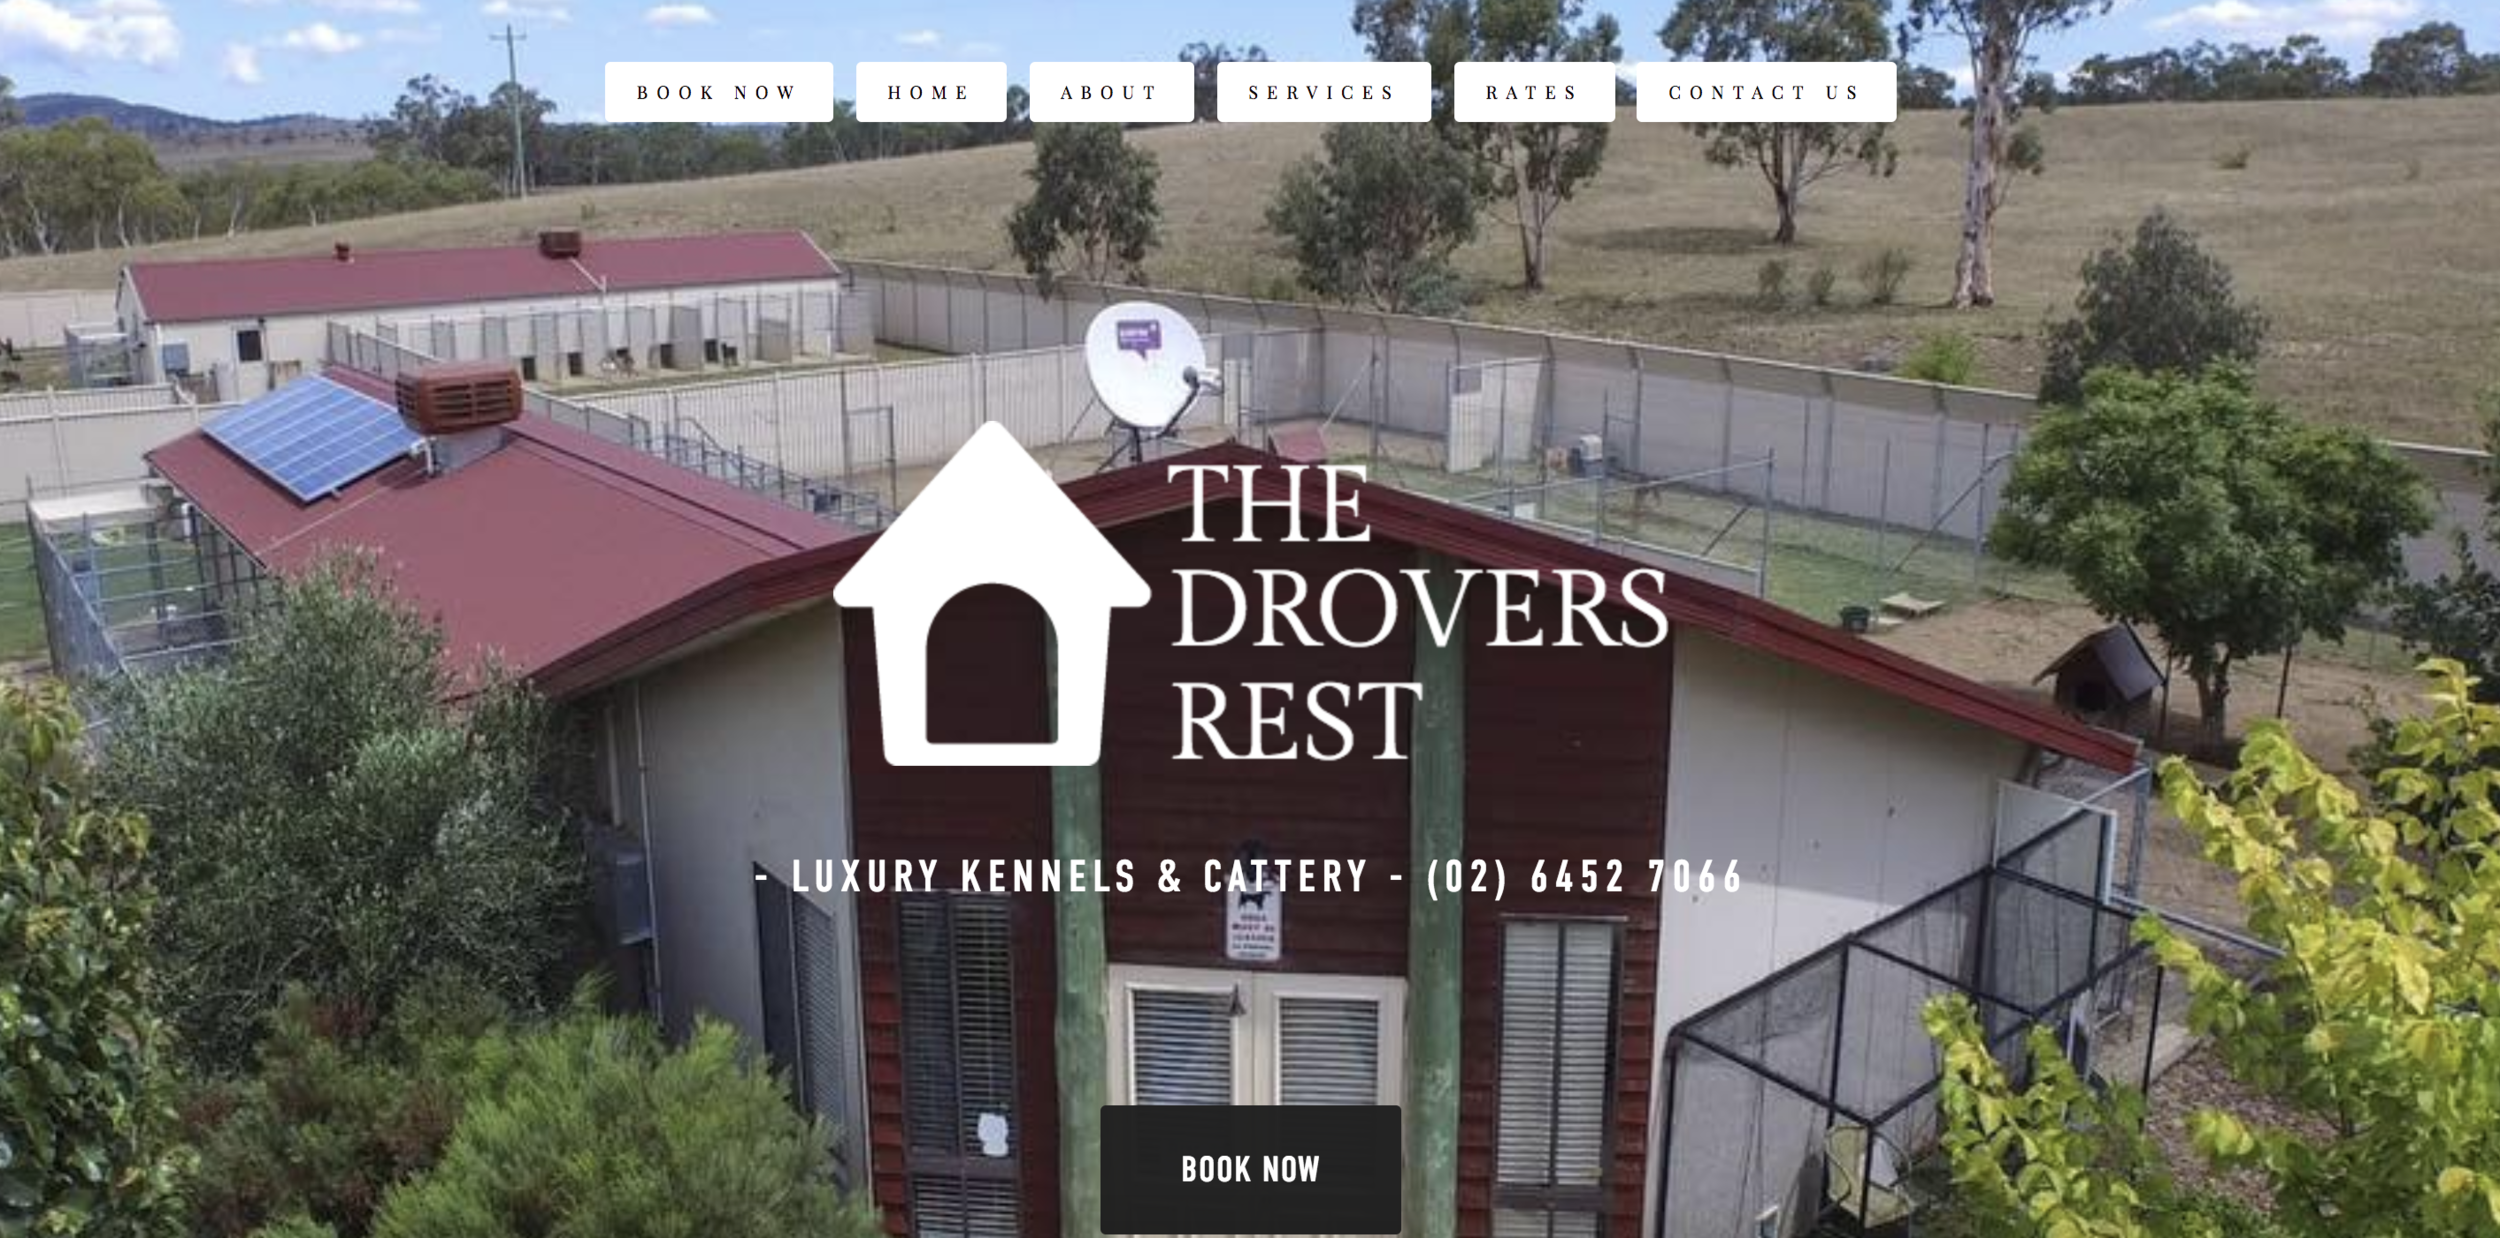 THE DROVERS REST BOARDING KENNELS